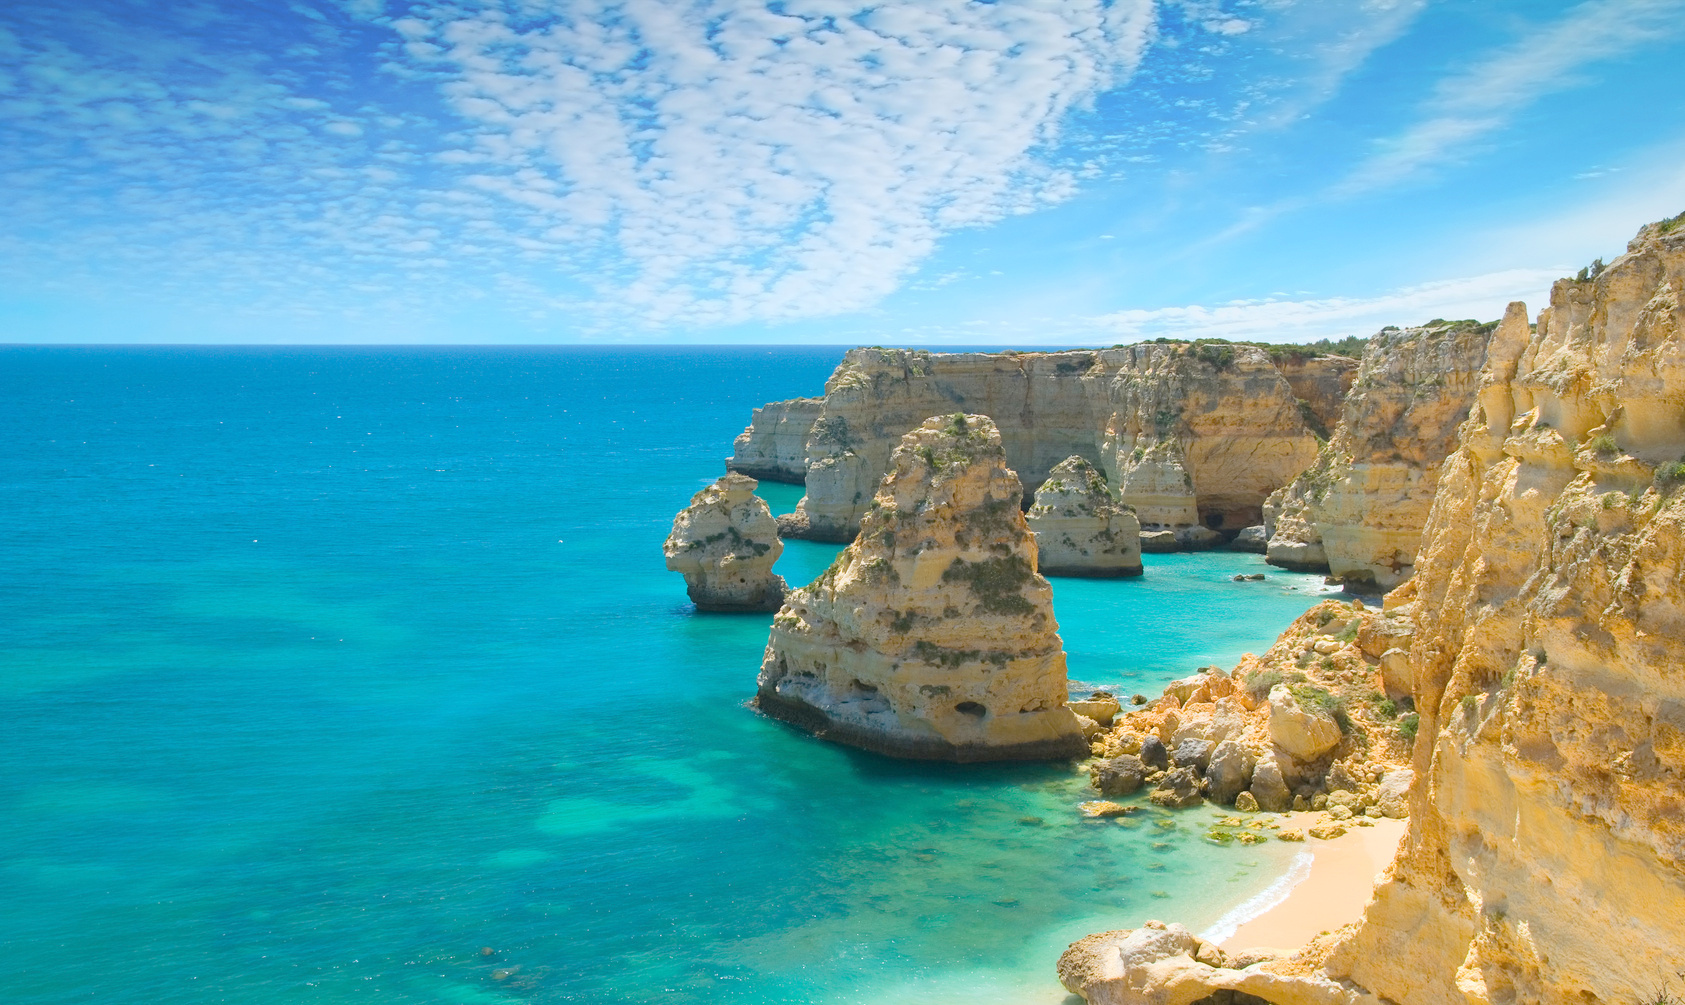 Vogue travel Portugal - Algarve portugal Reasons by Vogue: Why everyone is going to Portugal this year Vogue travel Portugal Algarve